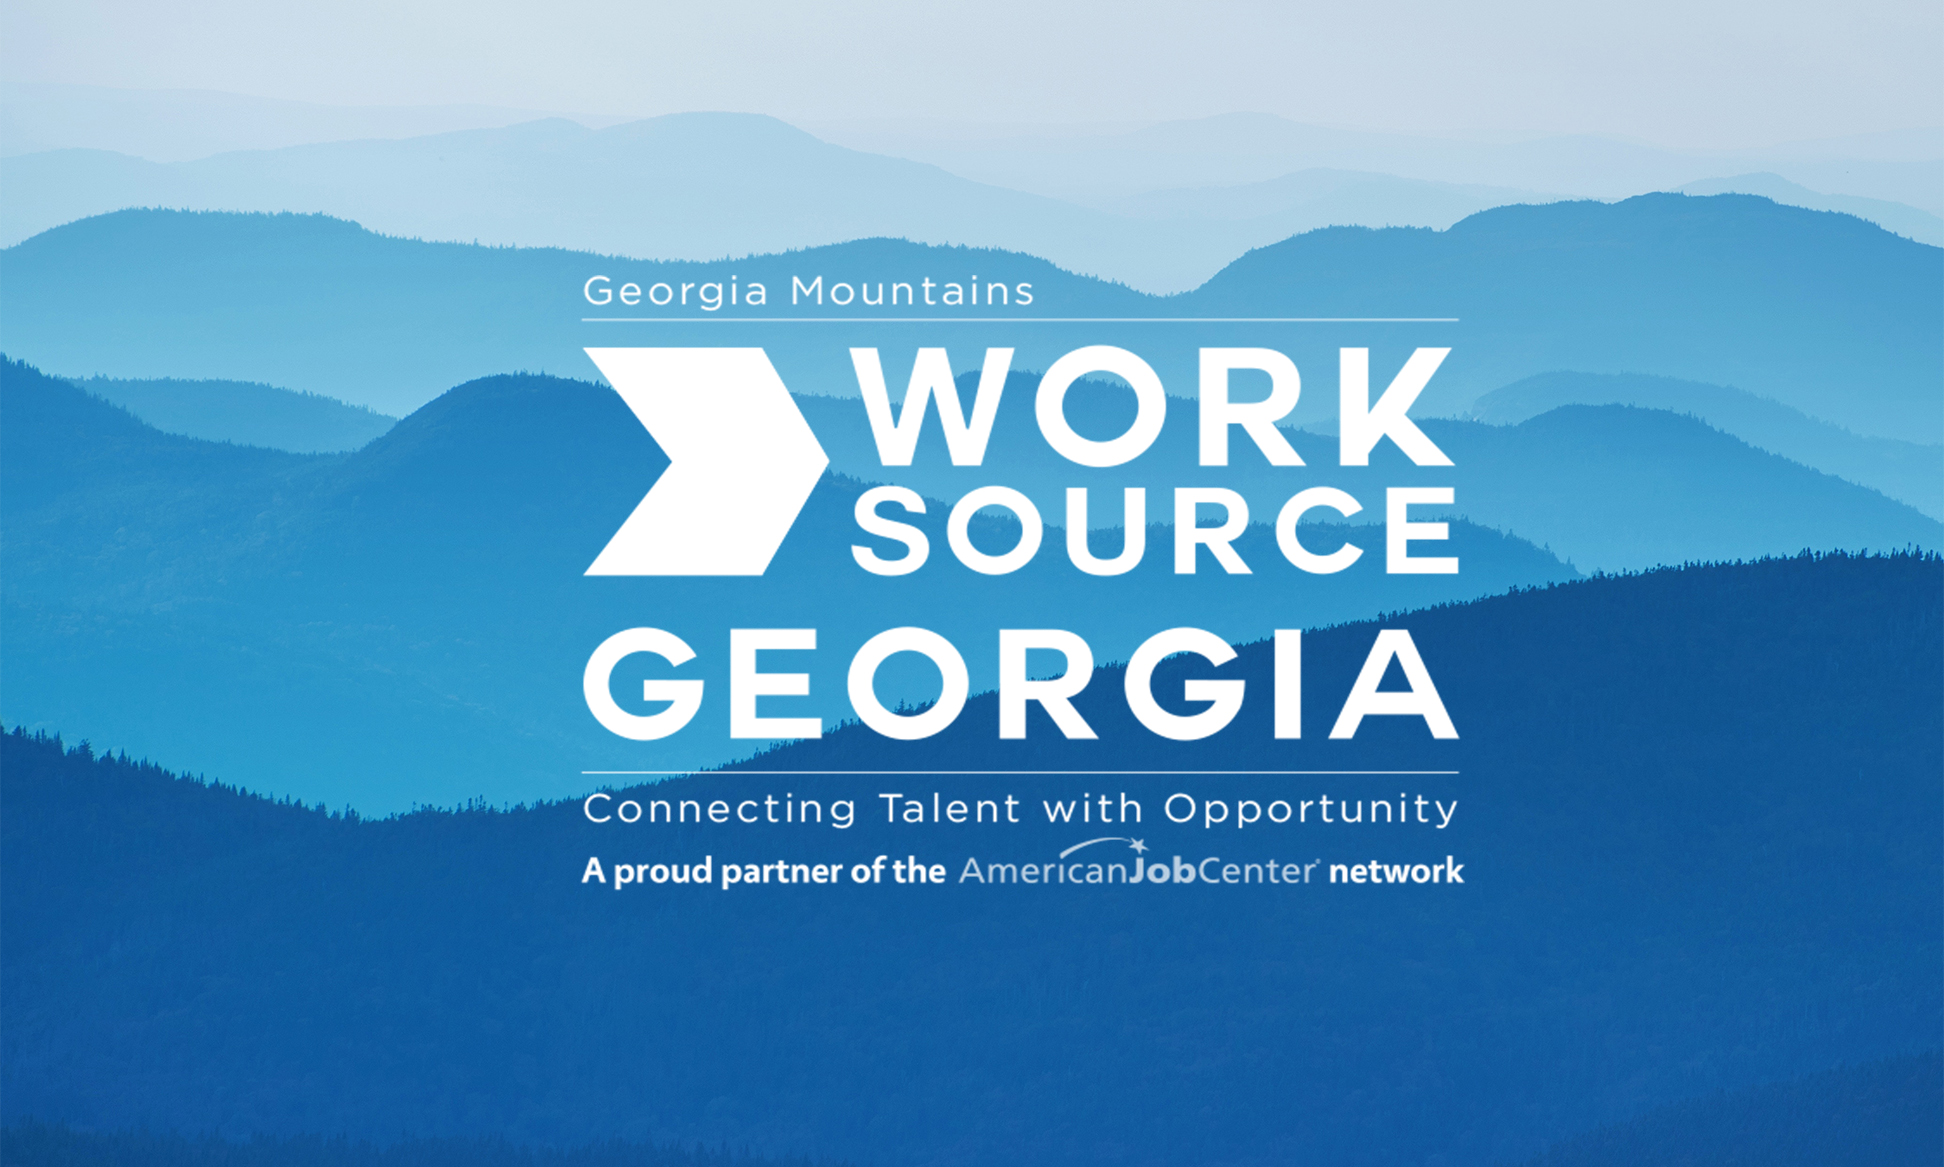 WorkSource Georgia Mountains – A Proud Partner of the